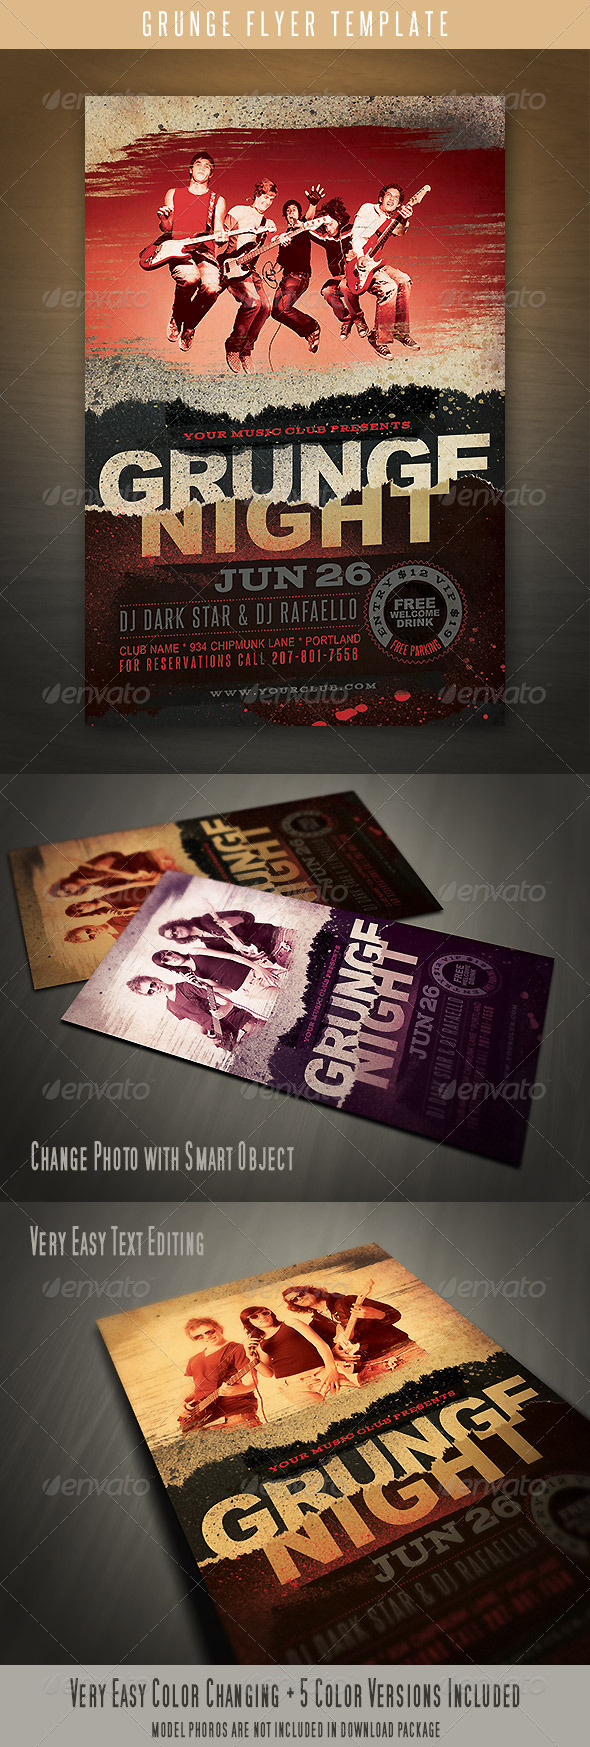 Grunge Flyer Template - Events Flyers